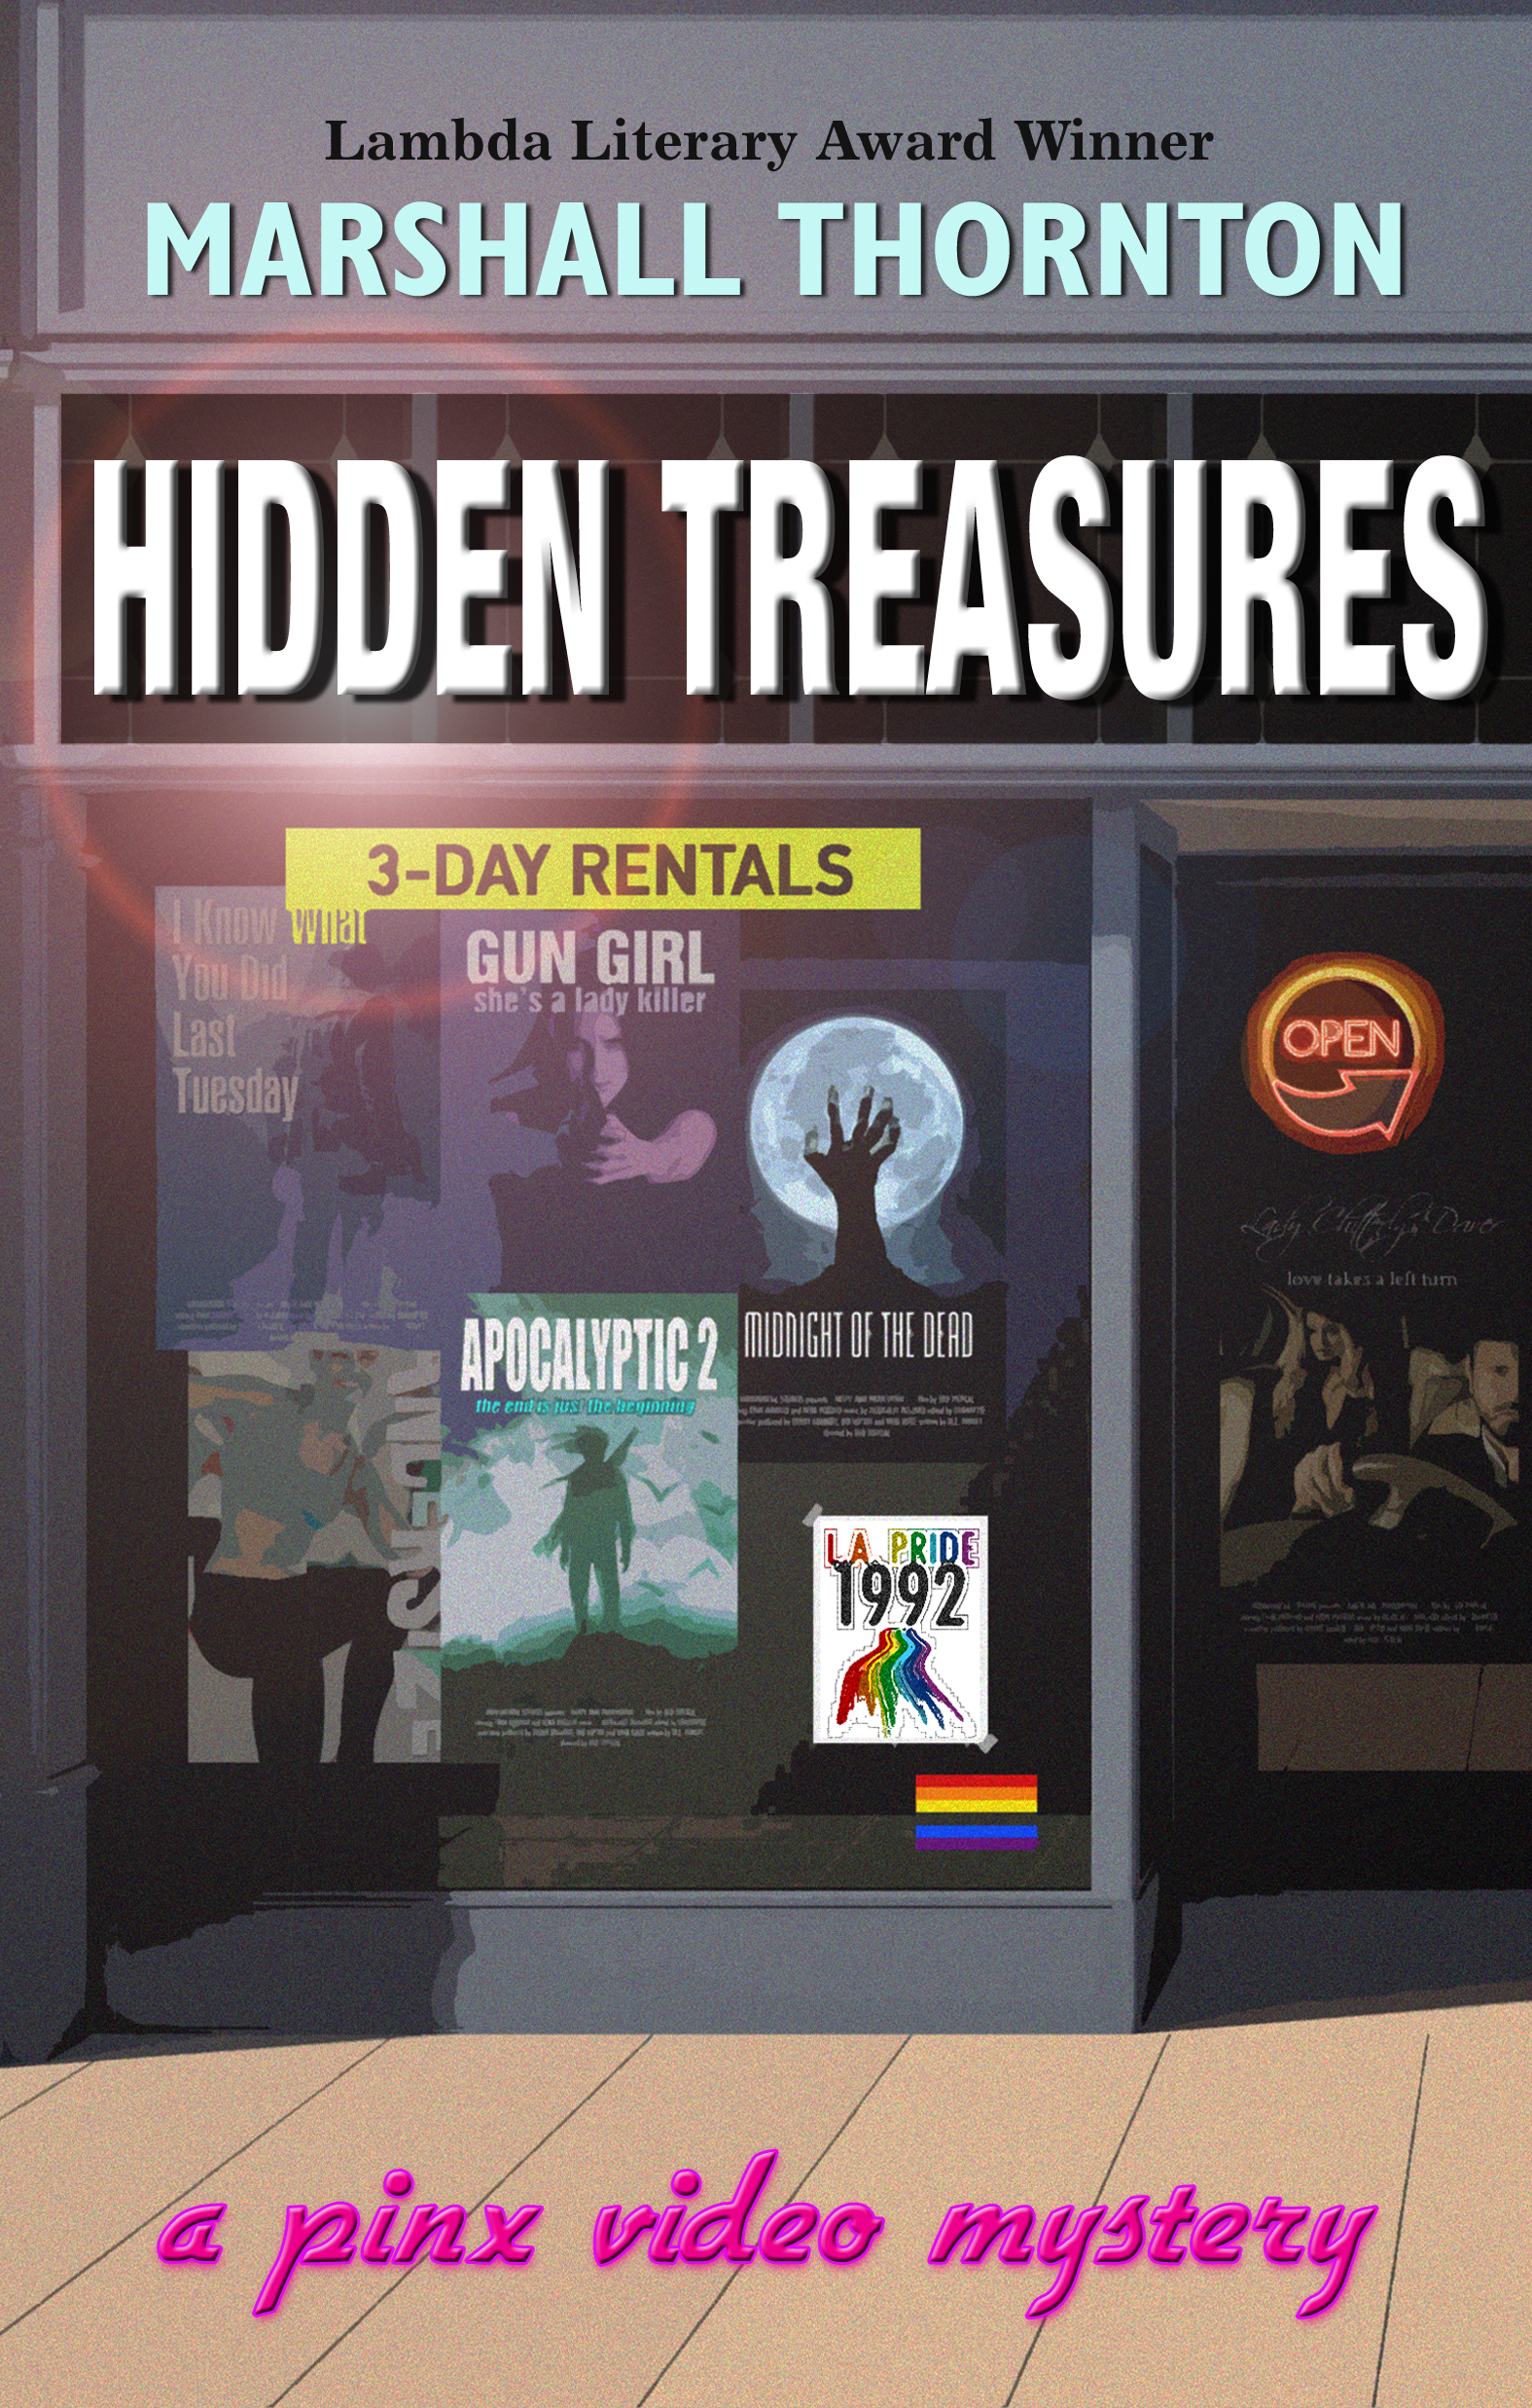 The reviews are coming in for Hidden Treasures A Pinx Video Mystery! |  Marshall Thornton